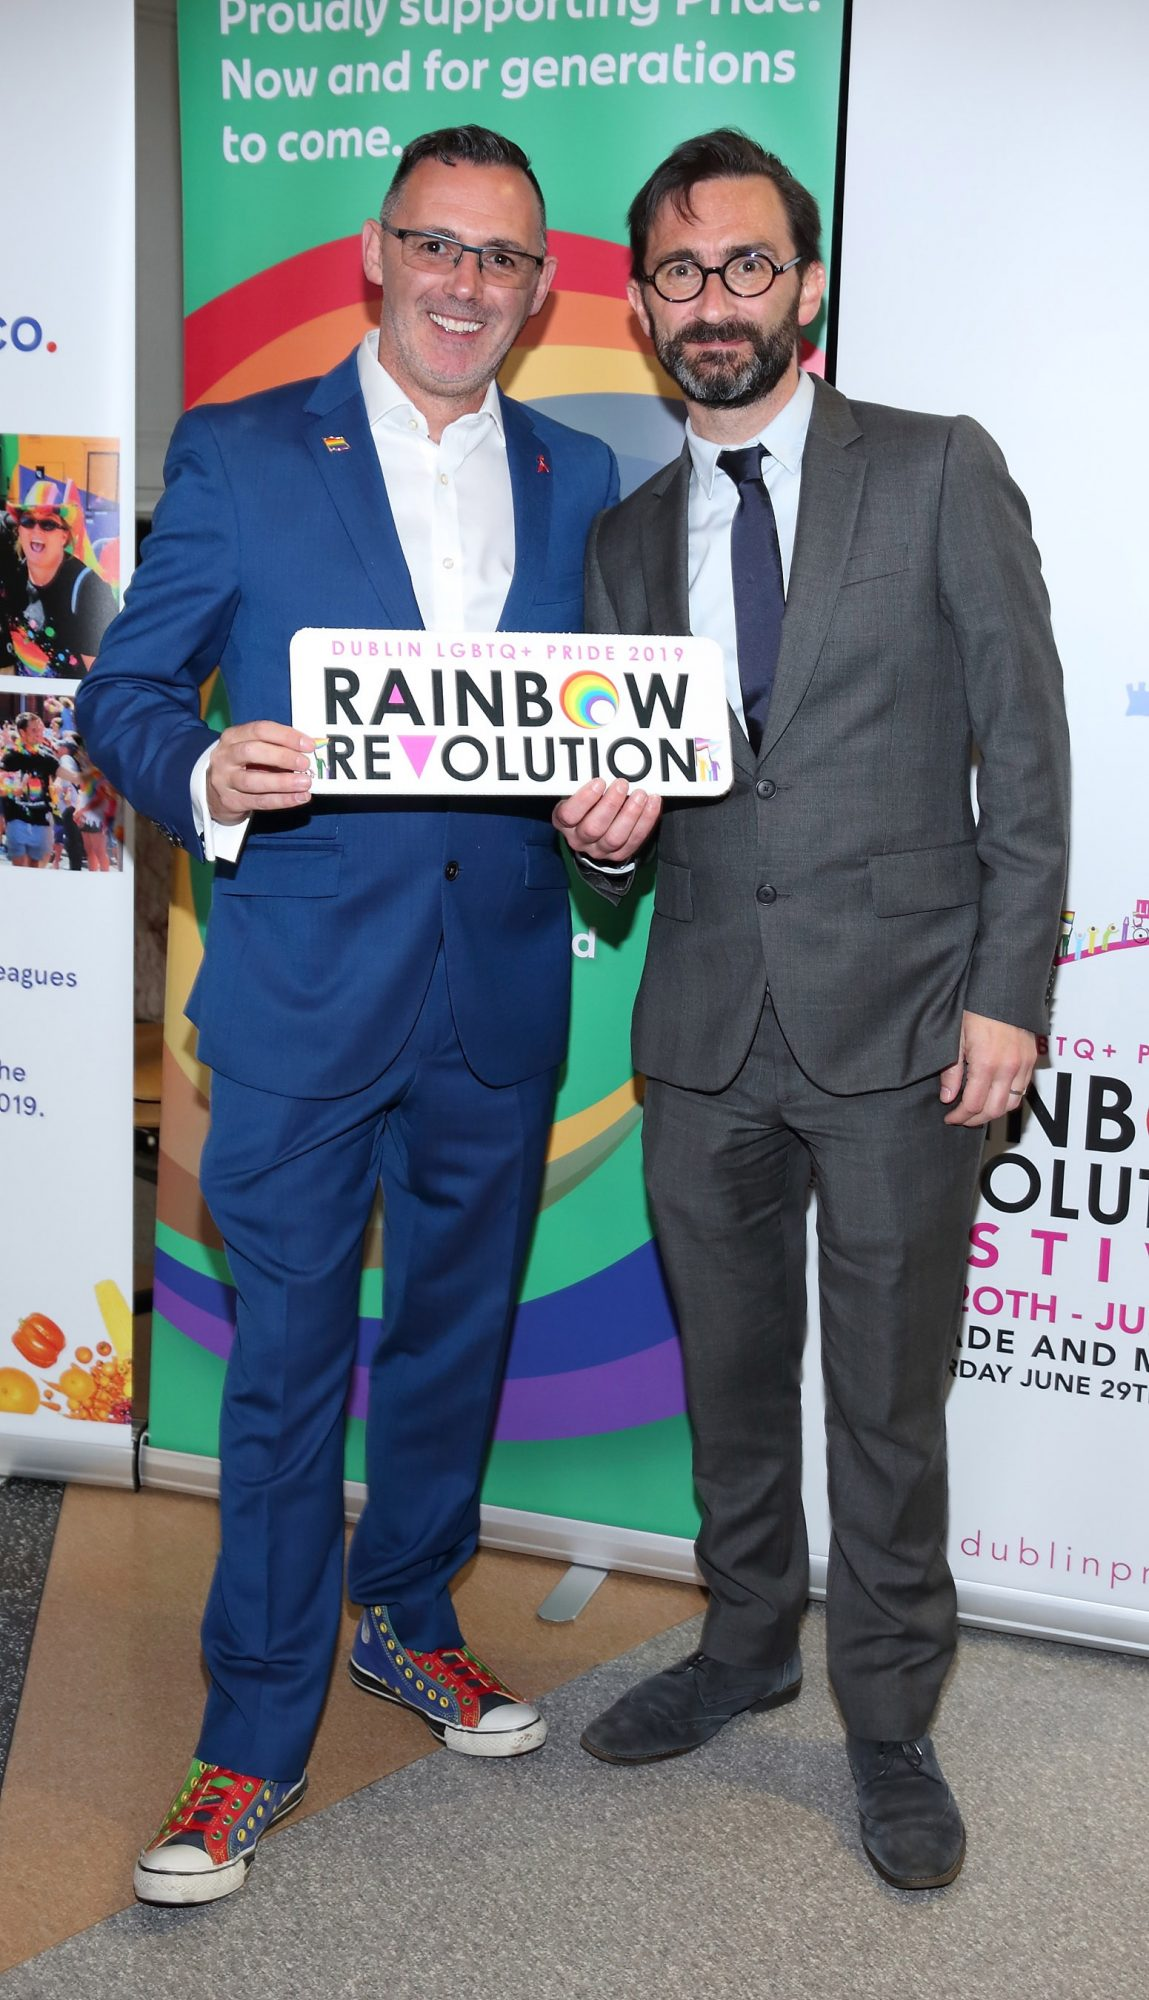 Eddie McGuinness and Jed Dowling pictured at the launch of the Dublin LGBTQ+ Pride Festival 2019 in partnership with platinum sponsor Tesco at the GPO, Dublin. Picture: Brian McEvoy Photography